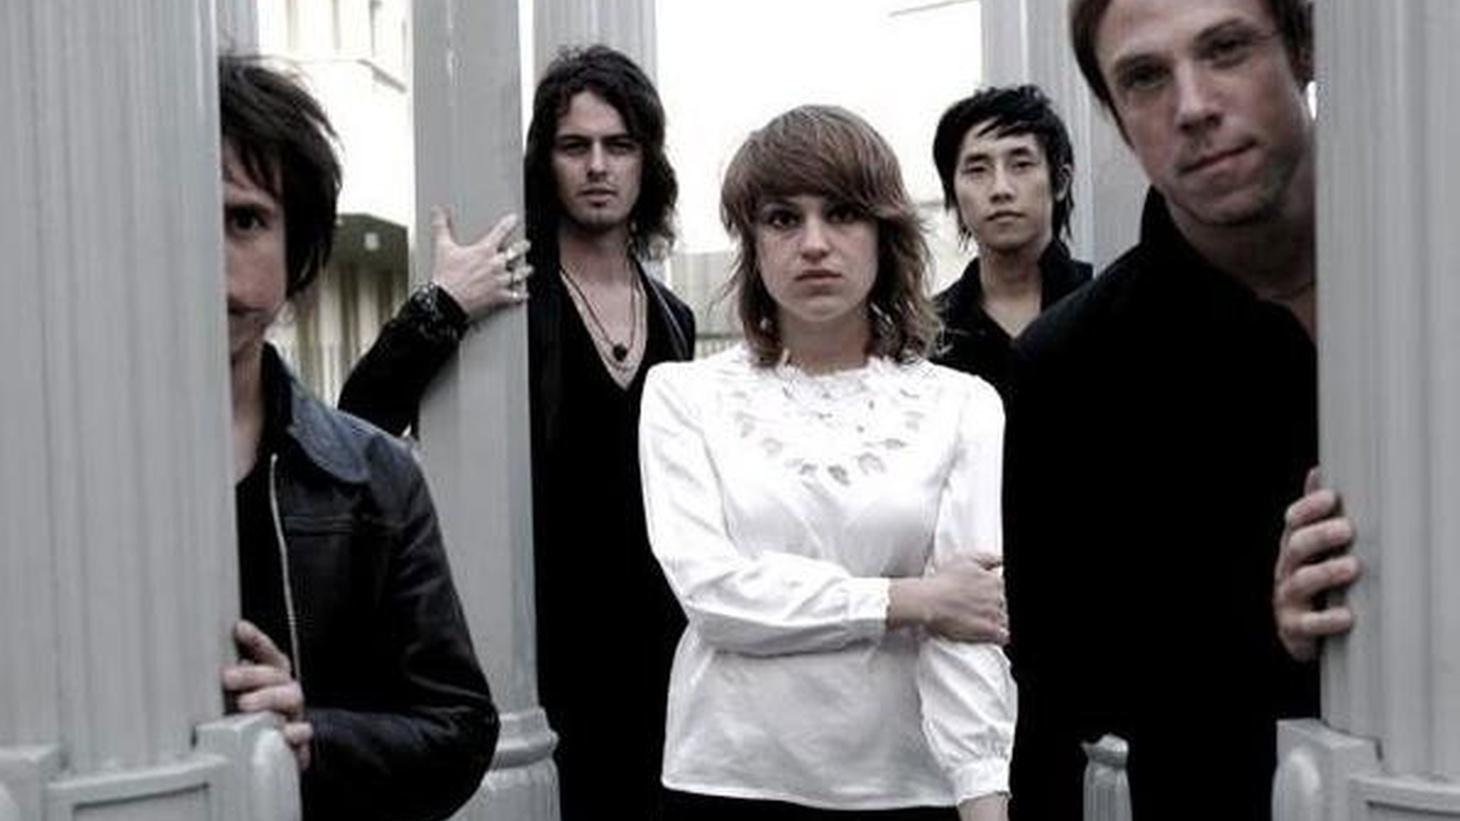 The Airborne Toxic Event is one of the most successful bands to emerge from LA's music scene over the last few years. It's easy to understand why...